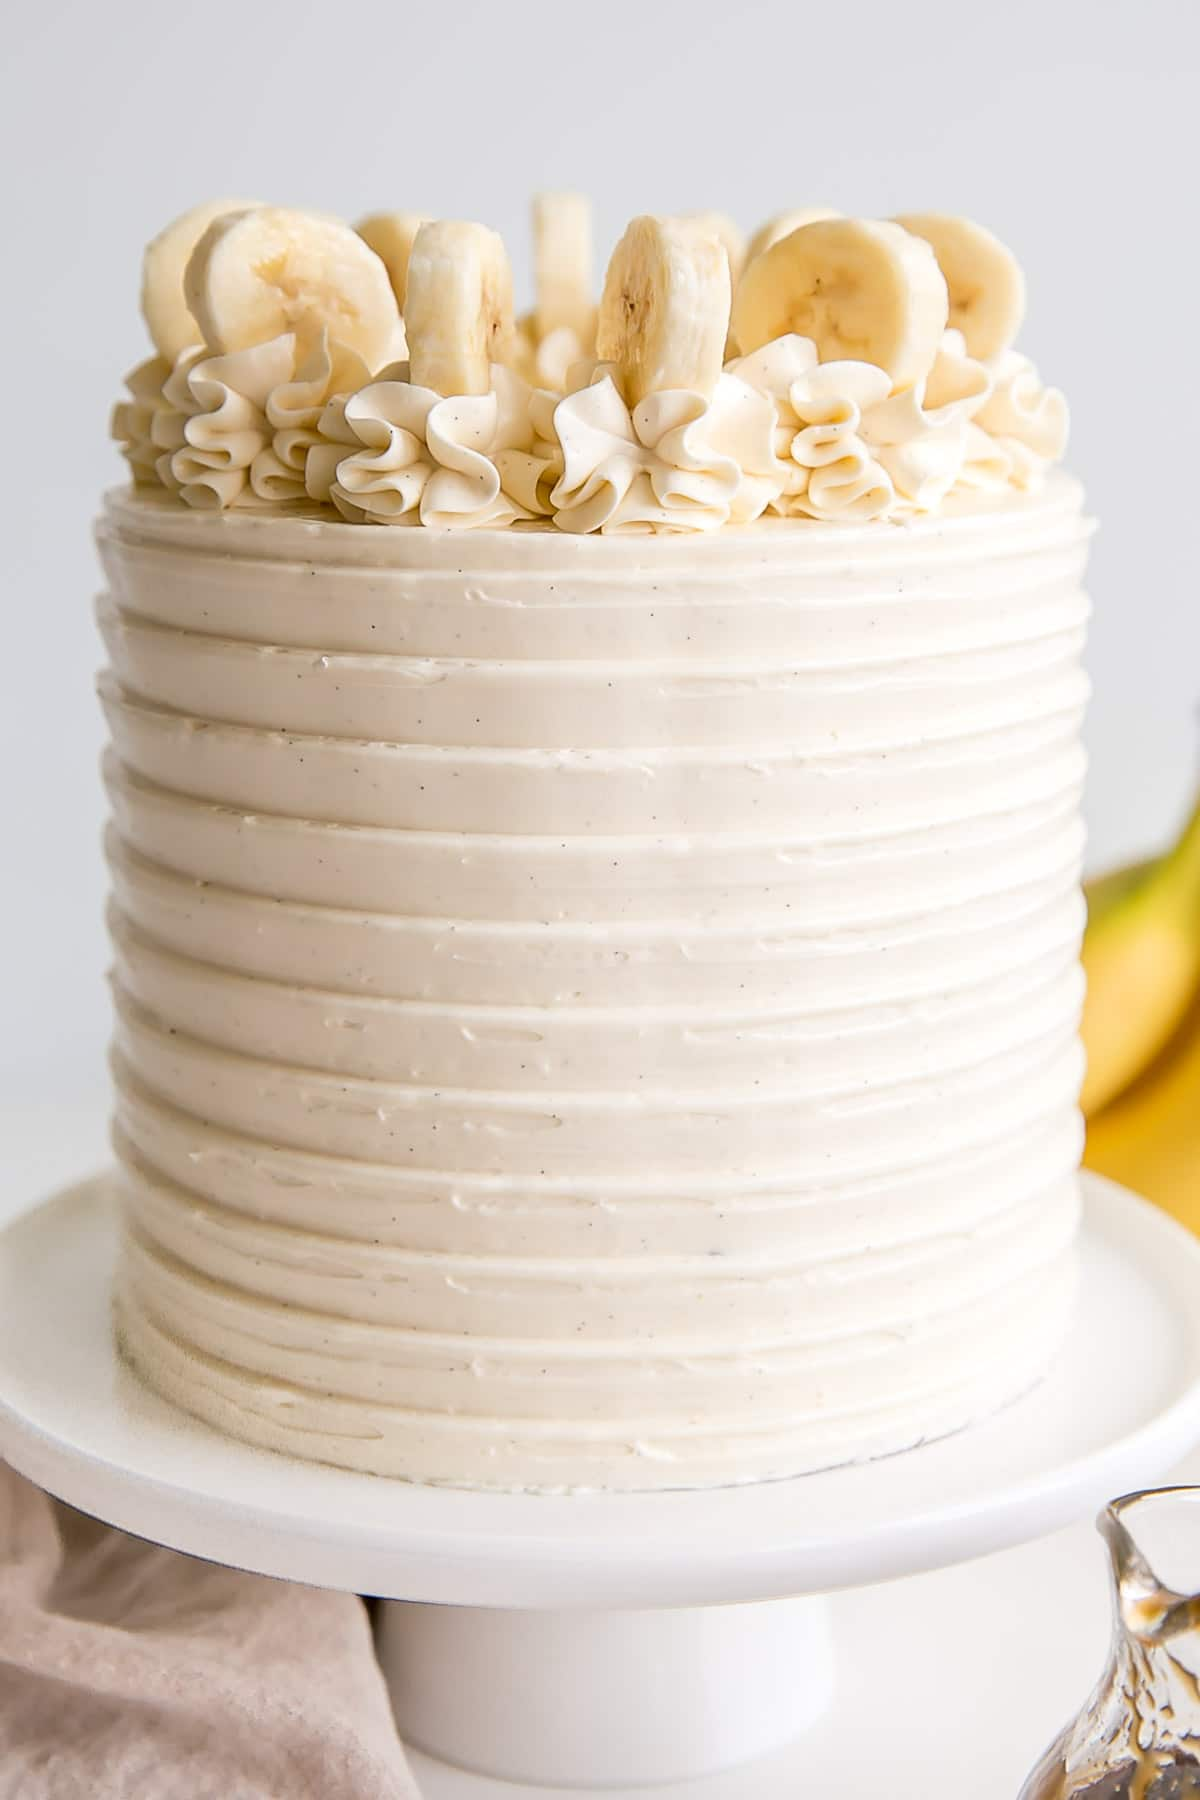 Close up of the front of the cake showing the texture from the cake comb and flecks of vanilla bean.